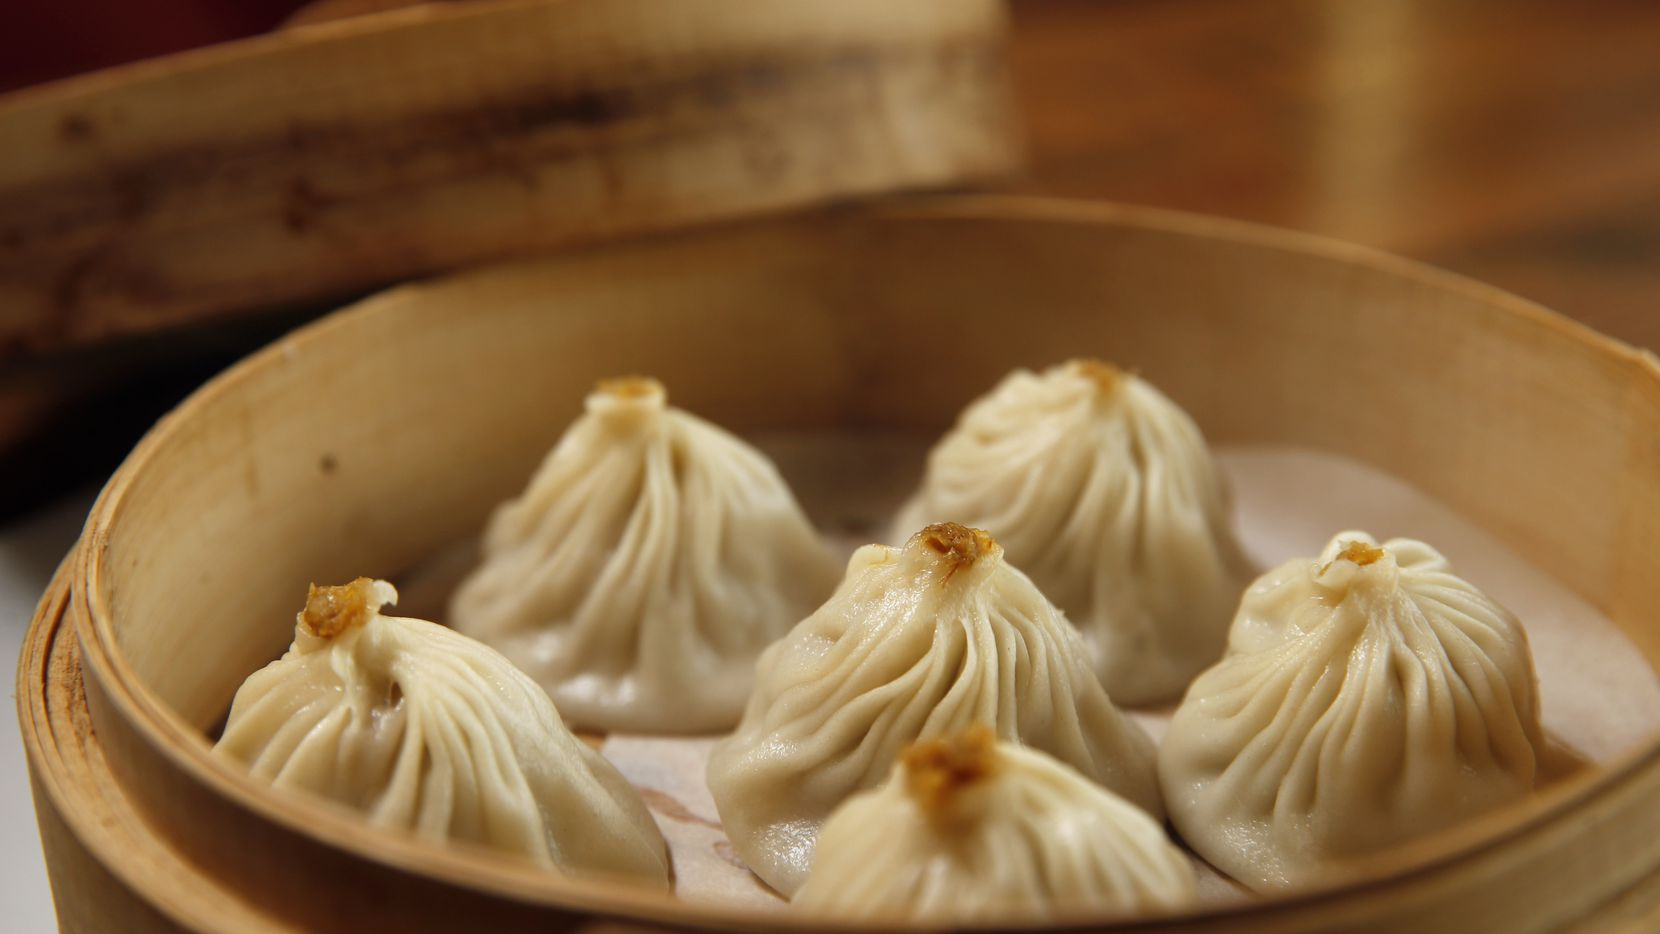 Steamed pork and crabmeat juicy dumplings — soup dumplings, or xiao long bao — are among 10 expertly made dumplings on the menu at Dragon House, a new Chinese restaurant in Southlake.